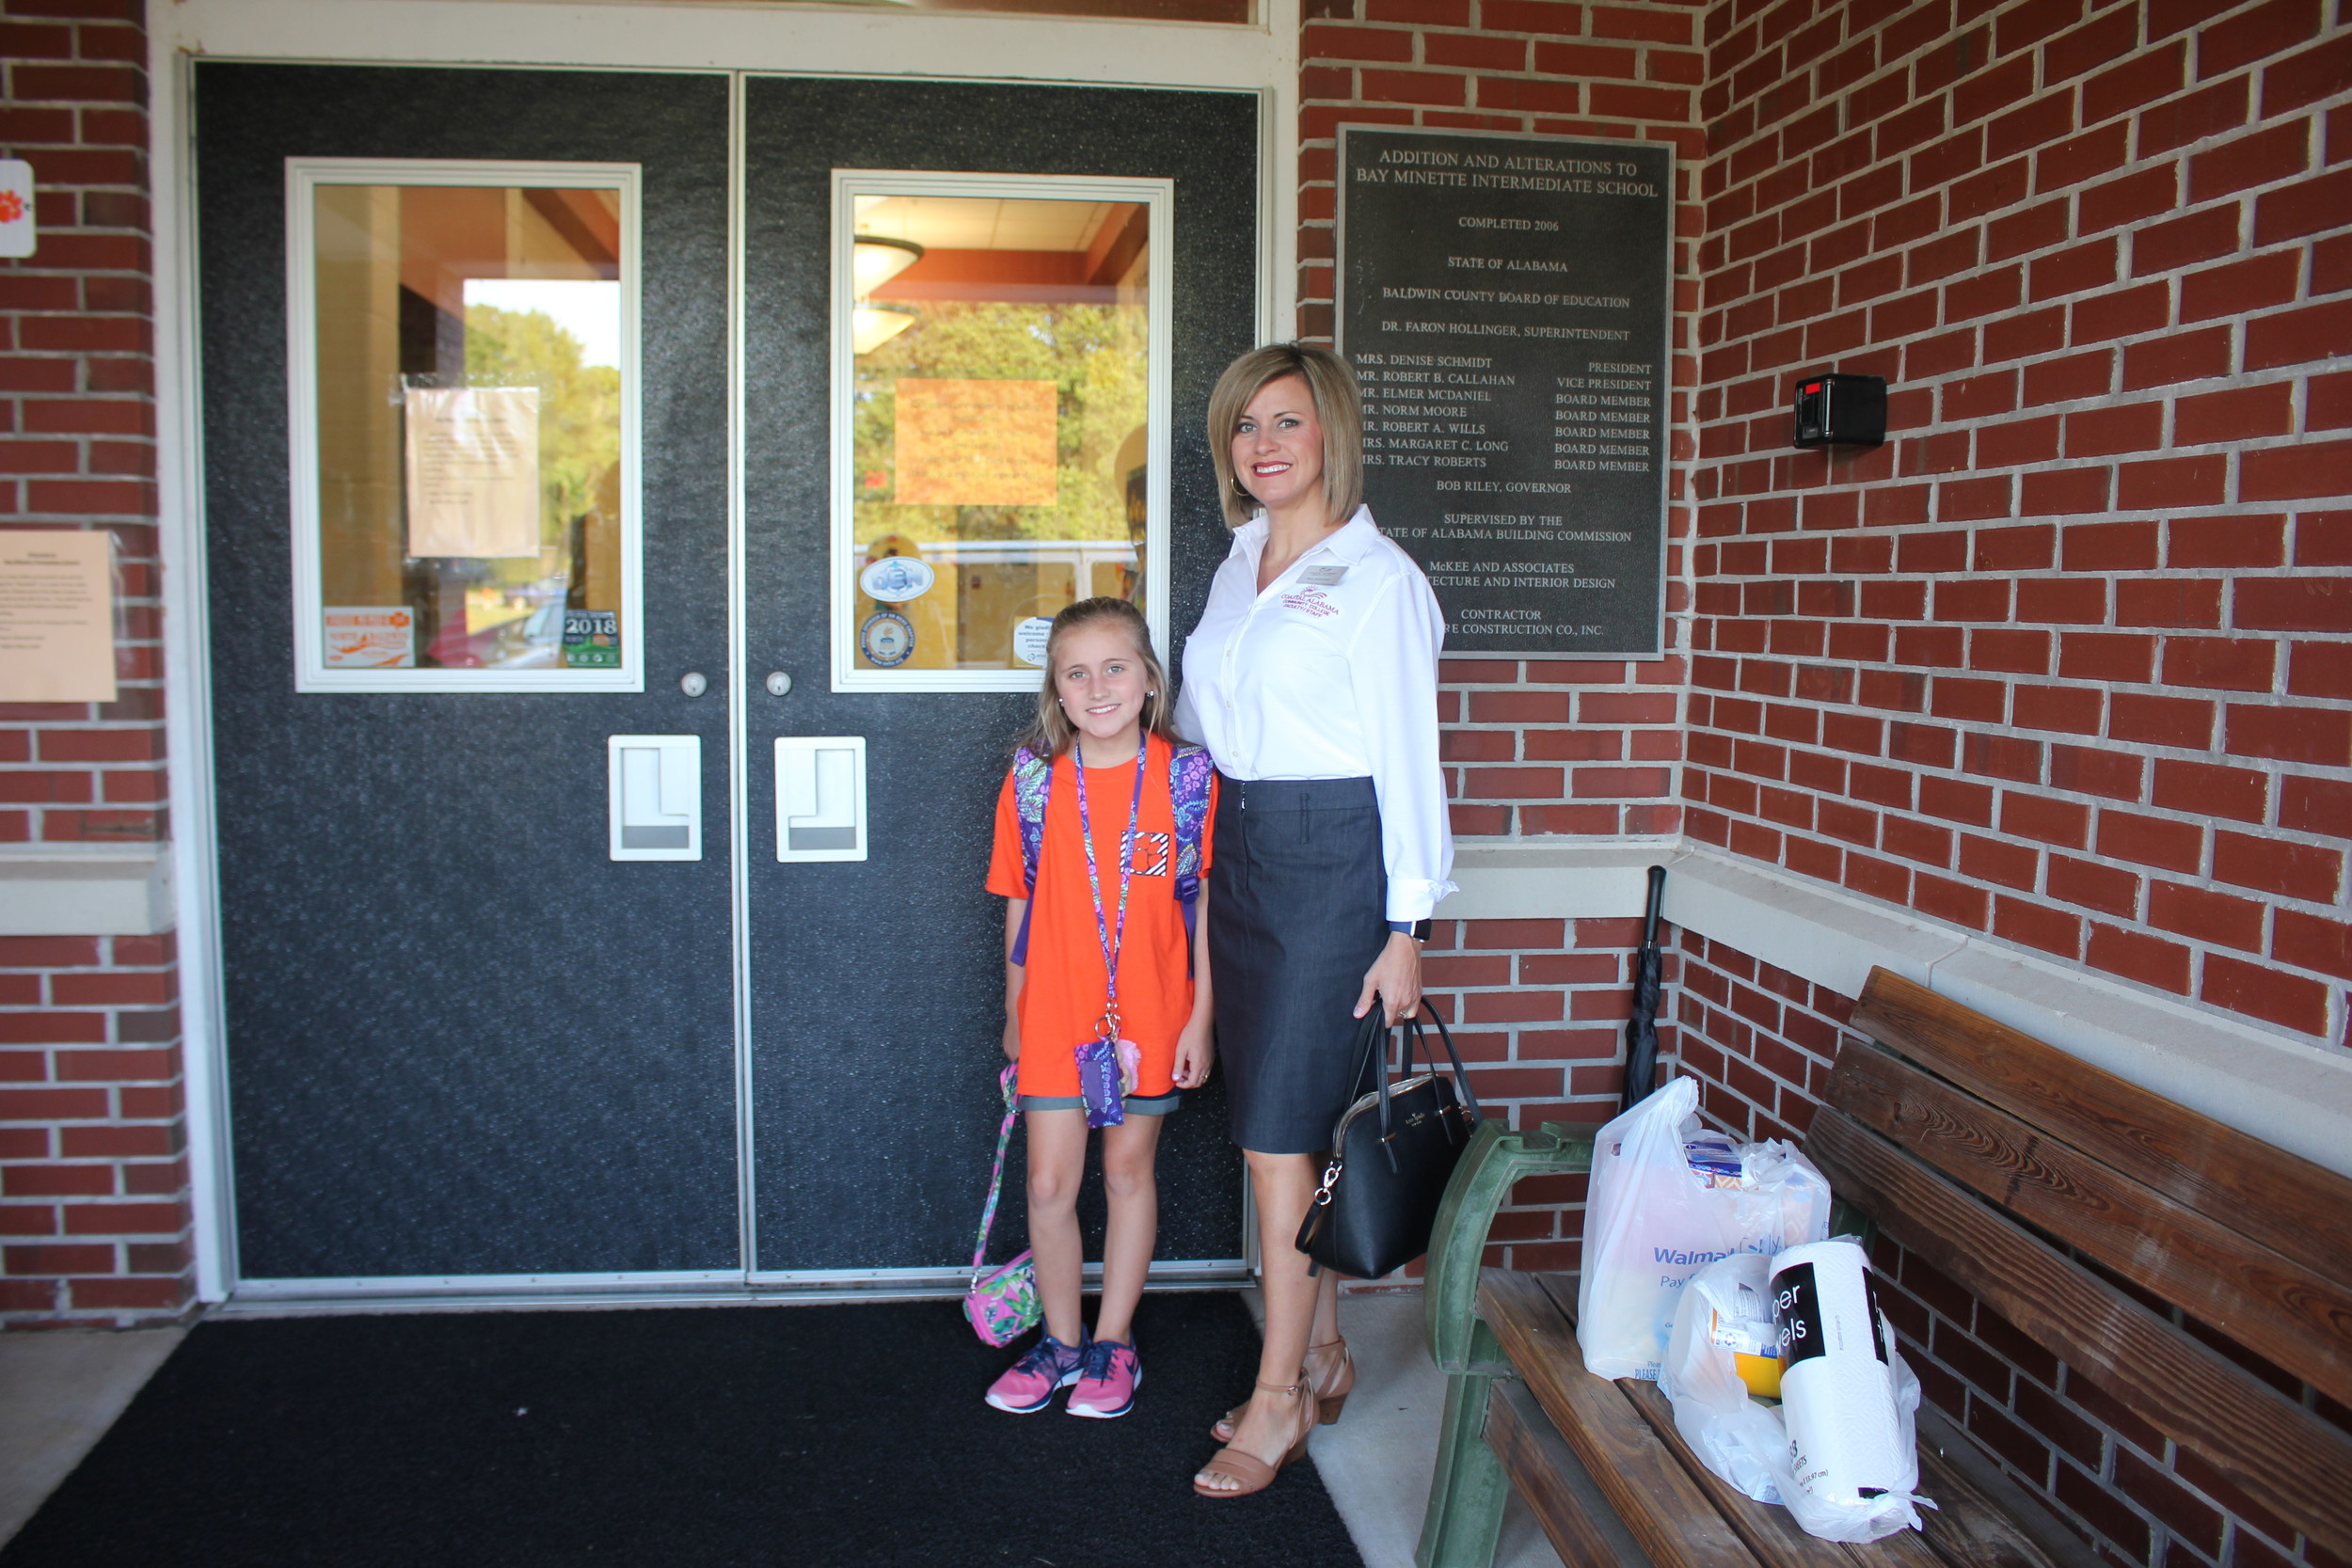 Tiffany Scarborough escorts her sixth grader Addison with bags of supplies on the first day of school.